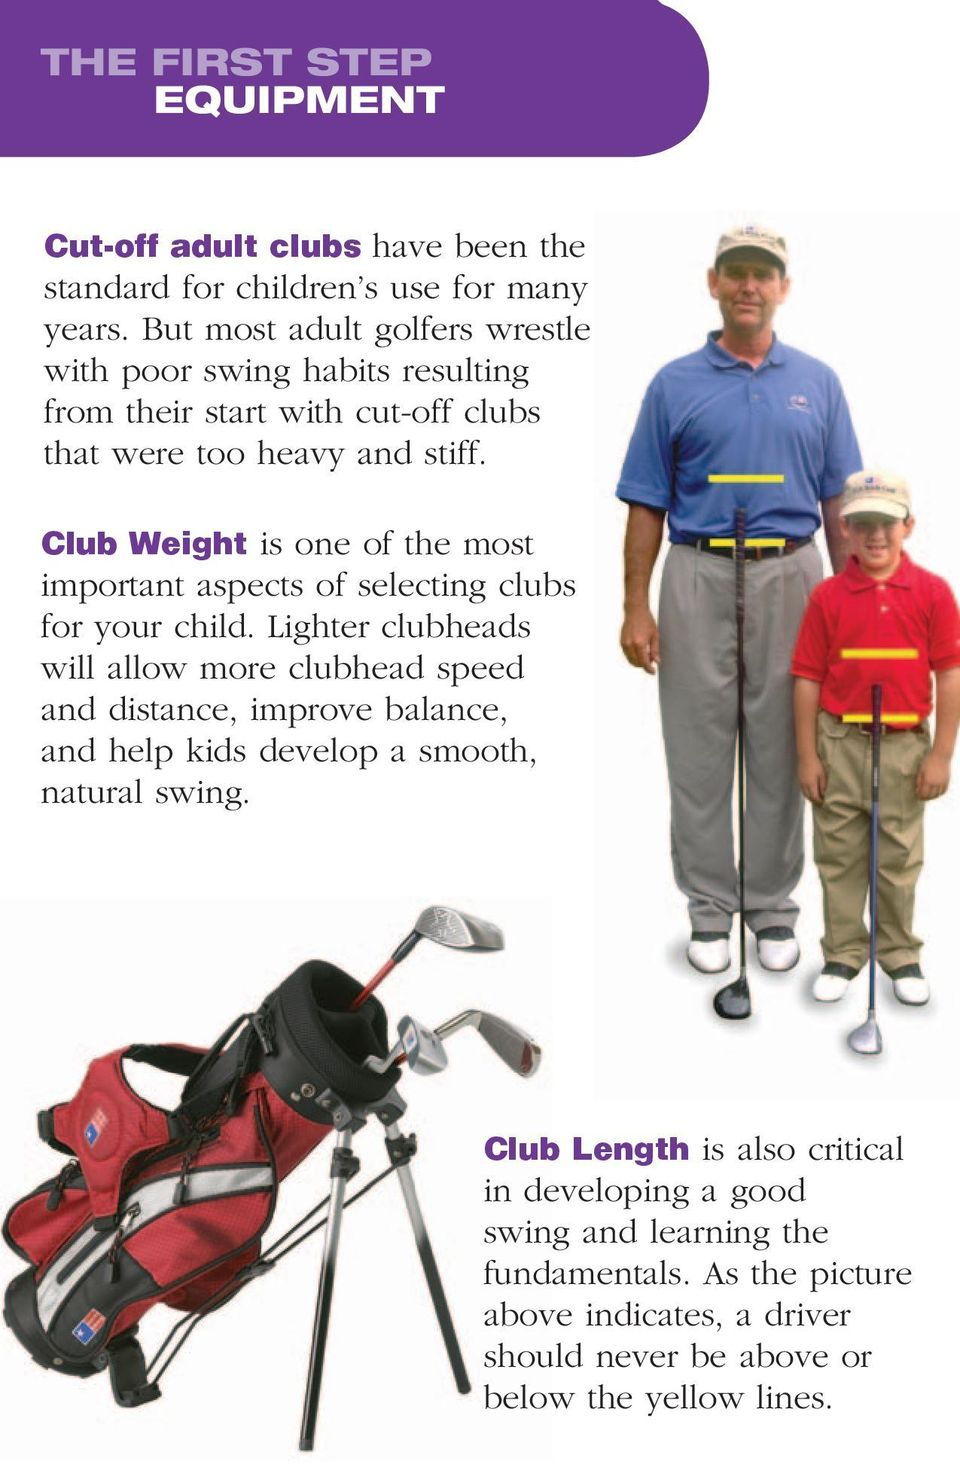 Club Weight is one of the most important aspects of selecting clubs for your child.